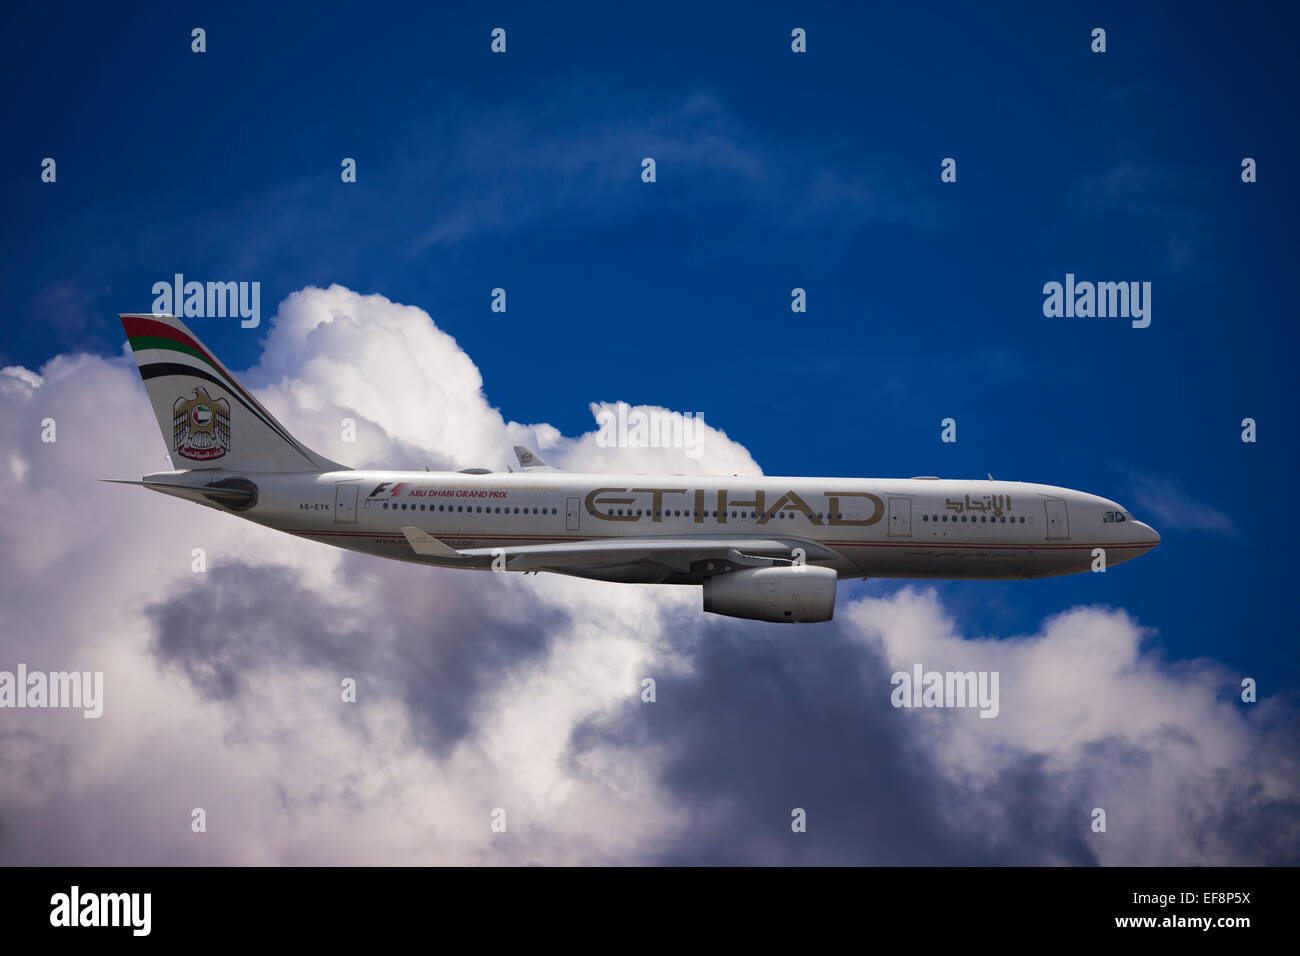 A6-EYK Etihad Airways Airbus A330-243 in flight against a cloudy sky - Stock Image